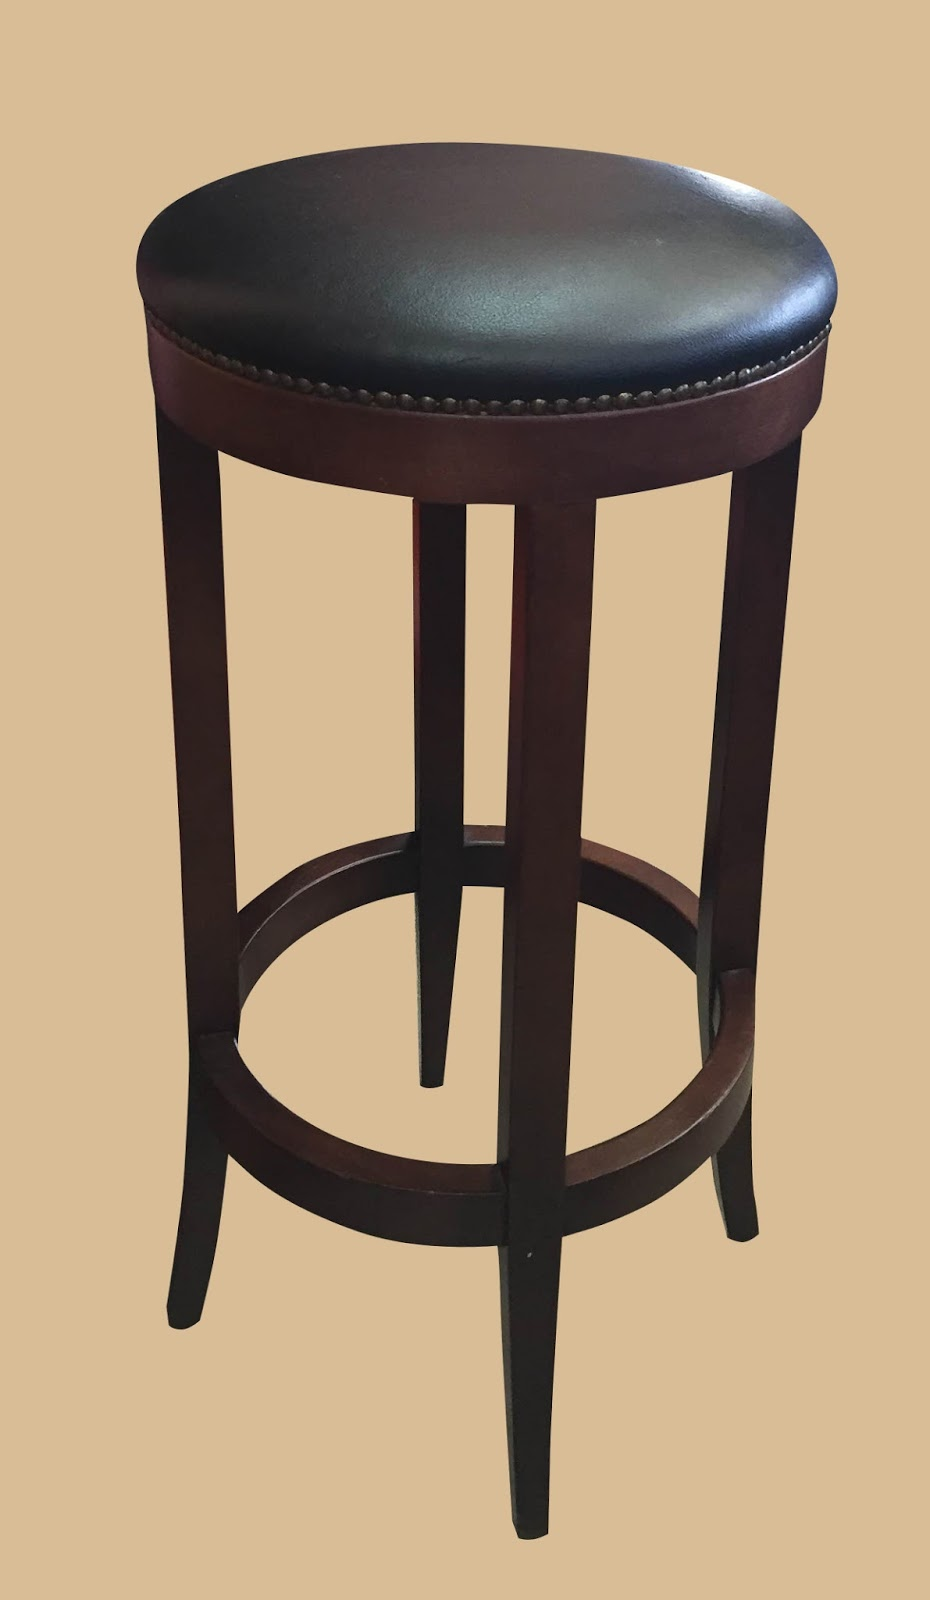 Uhuru Furniture amp Collectibles Leather Top Bar Stool  : 789 from uhurufurniturephilly.blogspot.com size 930 x 1600 jpeg 79kB